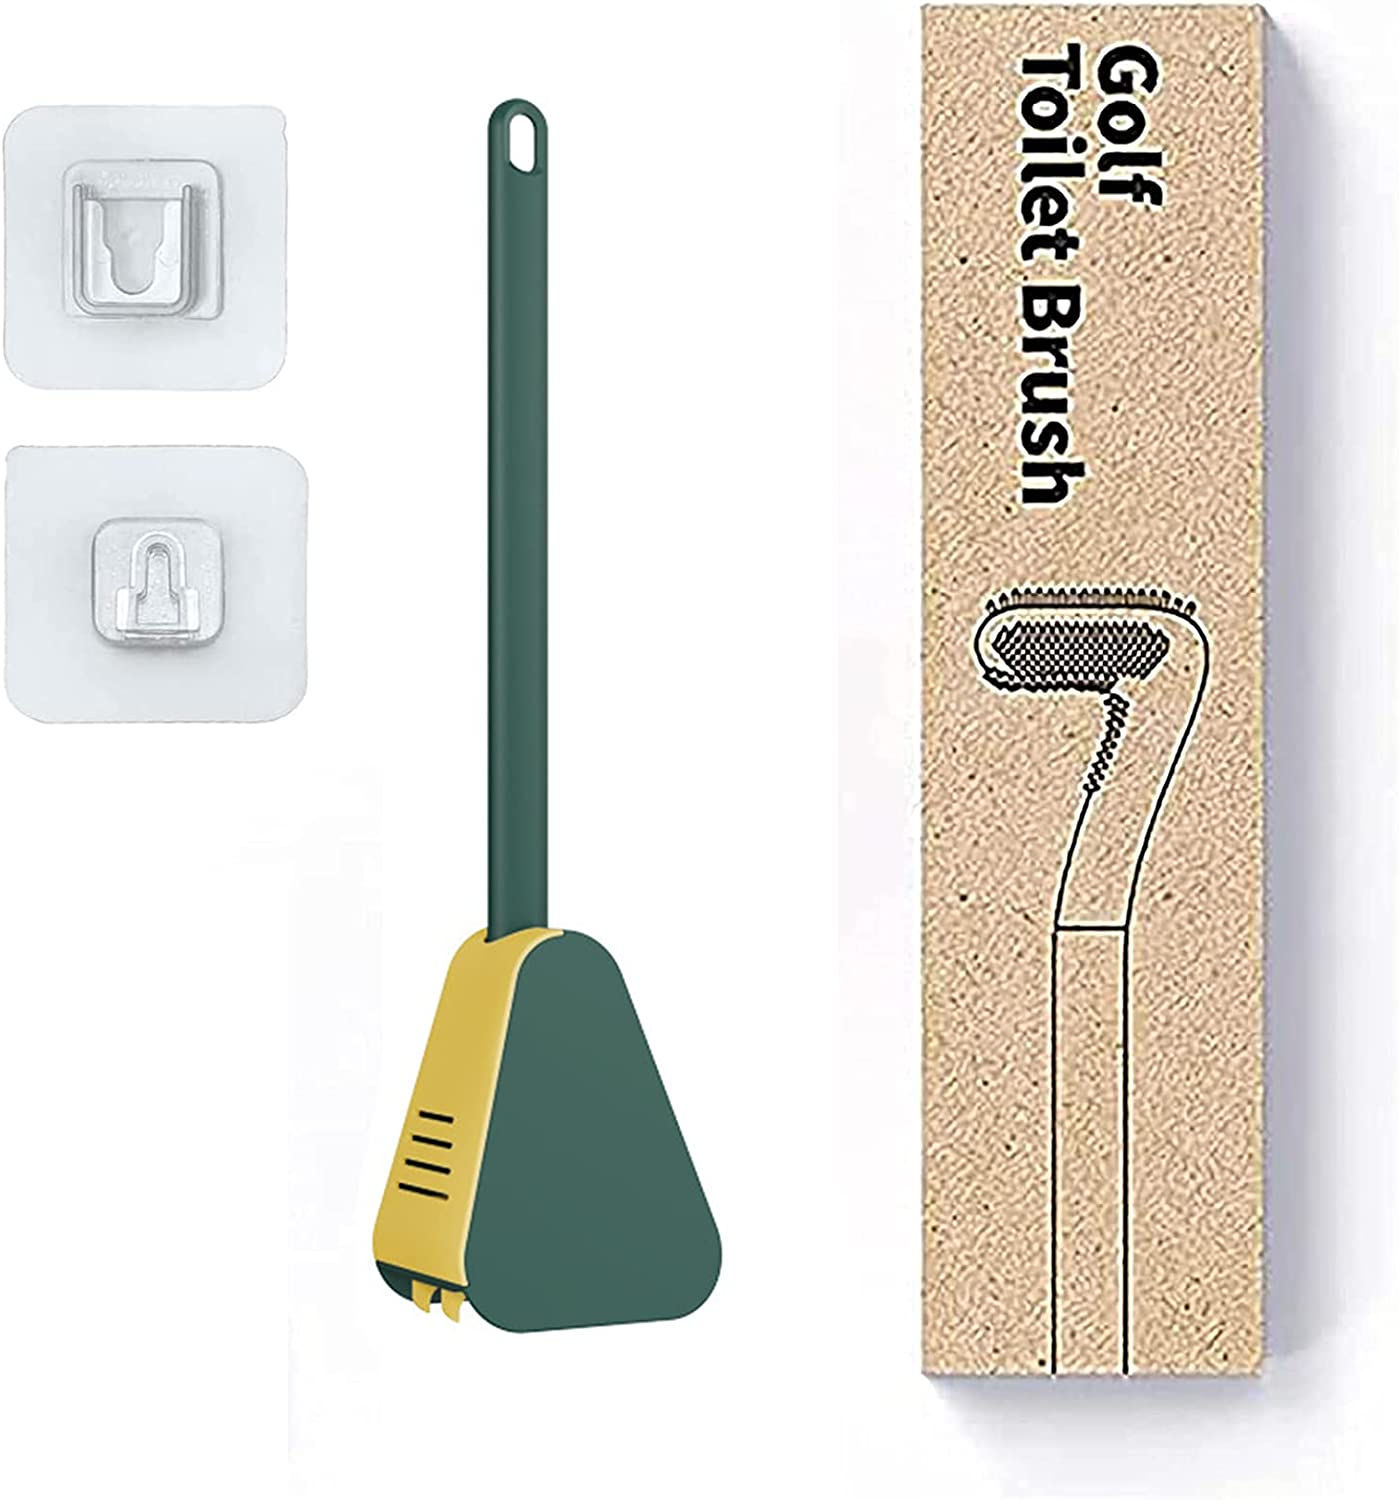 Max 84% OFF Golf Toilet Brush and excellence Holder Mounted Set Wall B Silicone